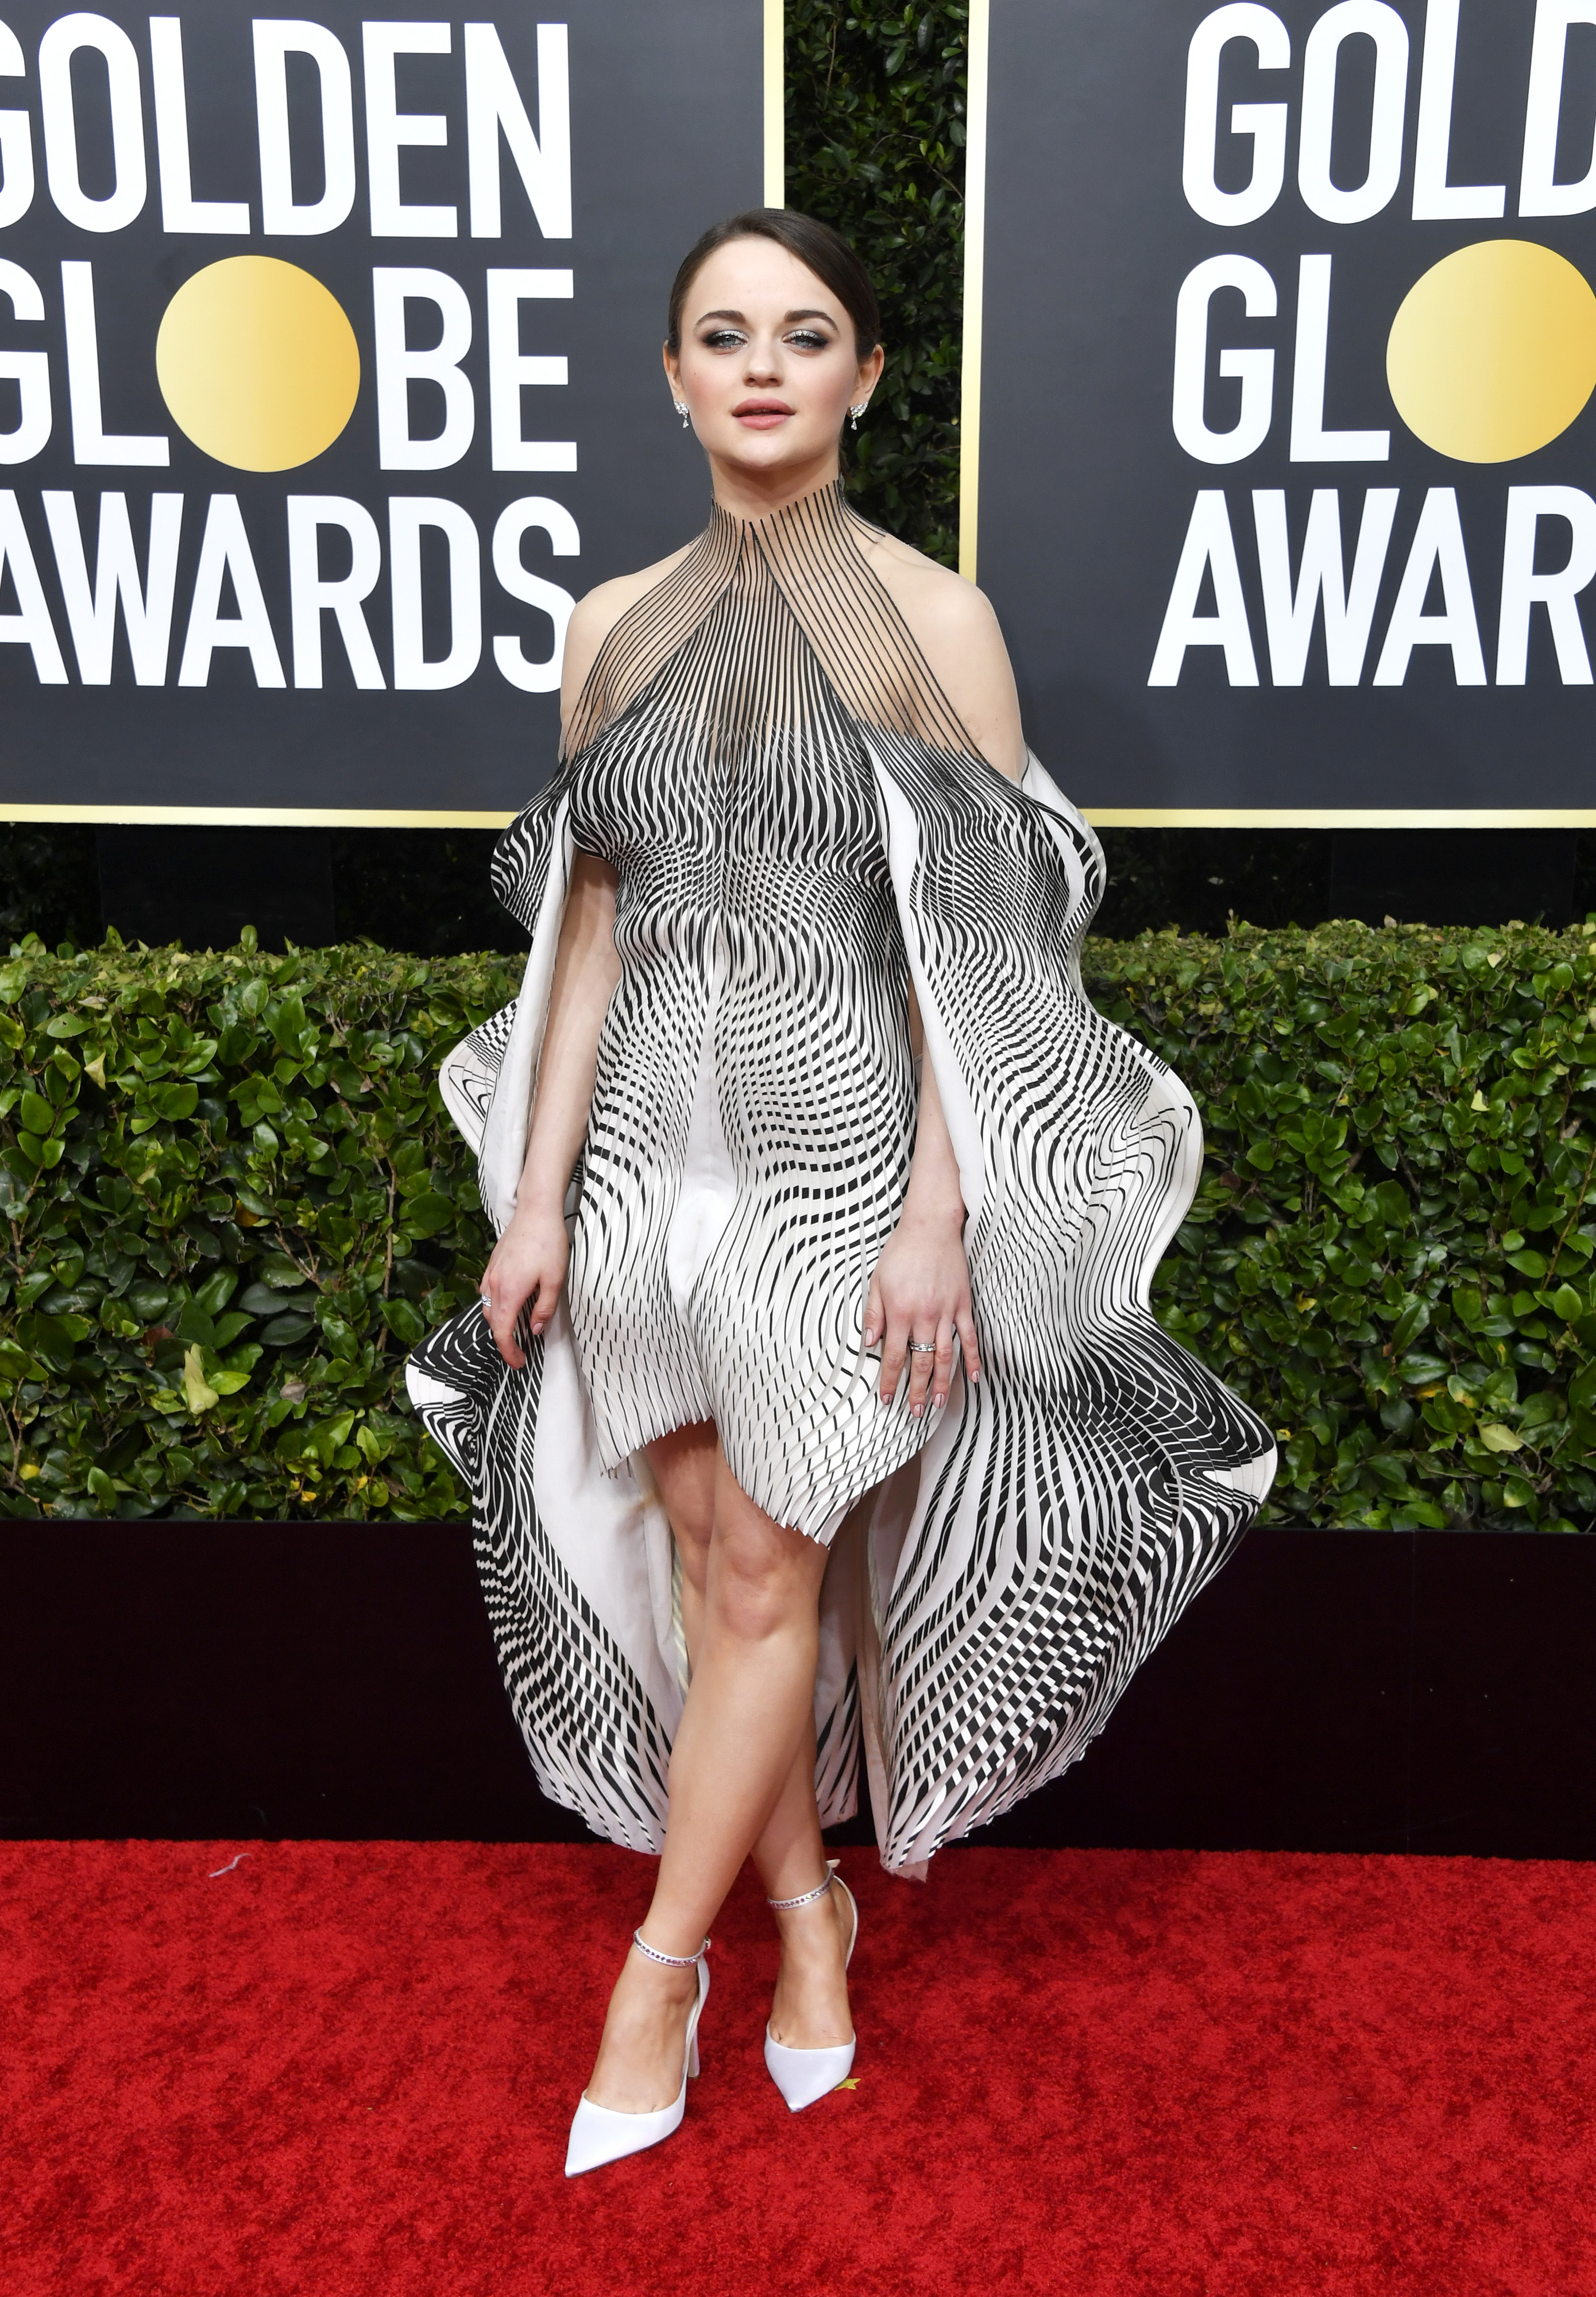 BEVERLY HILLS, CALIFORNIA - JANUARY 05: Joey King attends the 77th Annual Golden Globe Awards at The Beverly Hilton Hotel on January 05, 2020 in Beverly Hills, California. (Photo by Frazer Harrison/Getty Images)